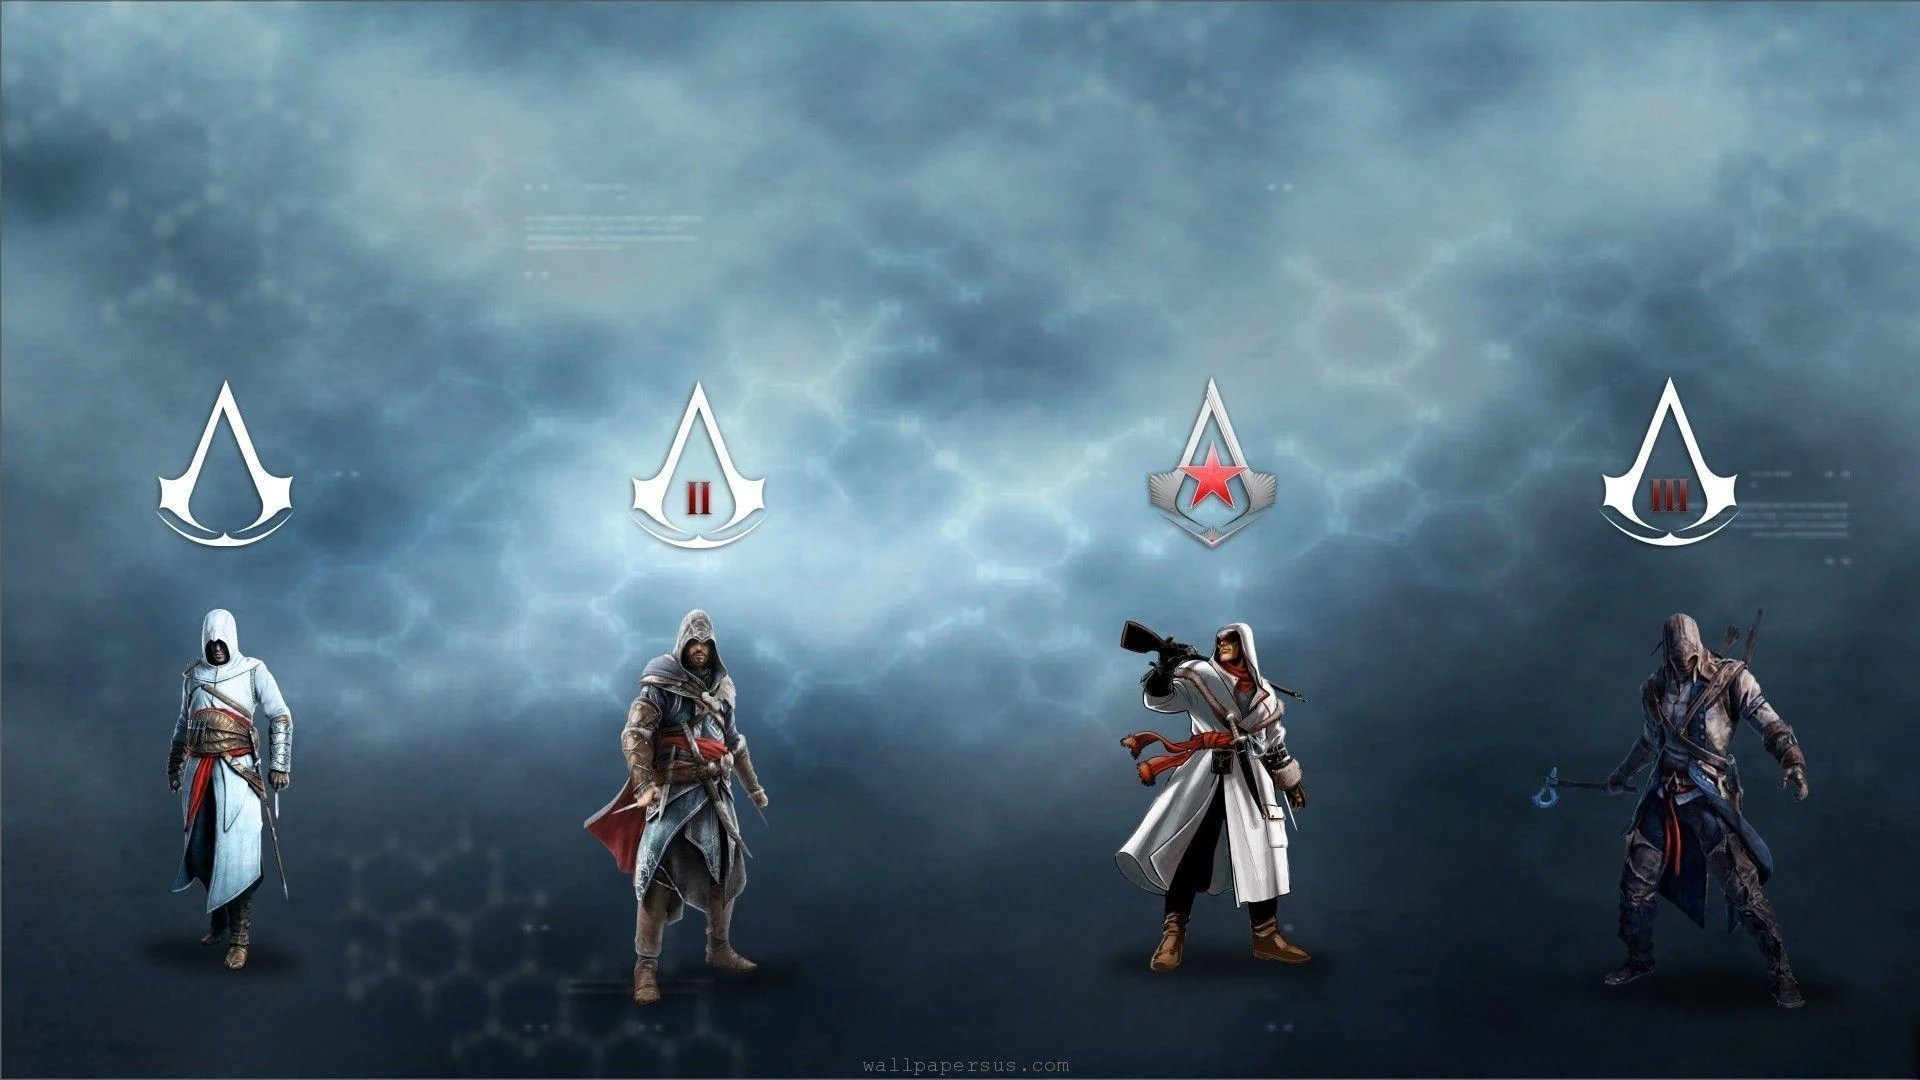 Awesome Quotes With Wallpapers For Facebook Assassin S Creed 3 Wallpapers Hd Wallpaper Cave